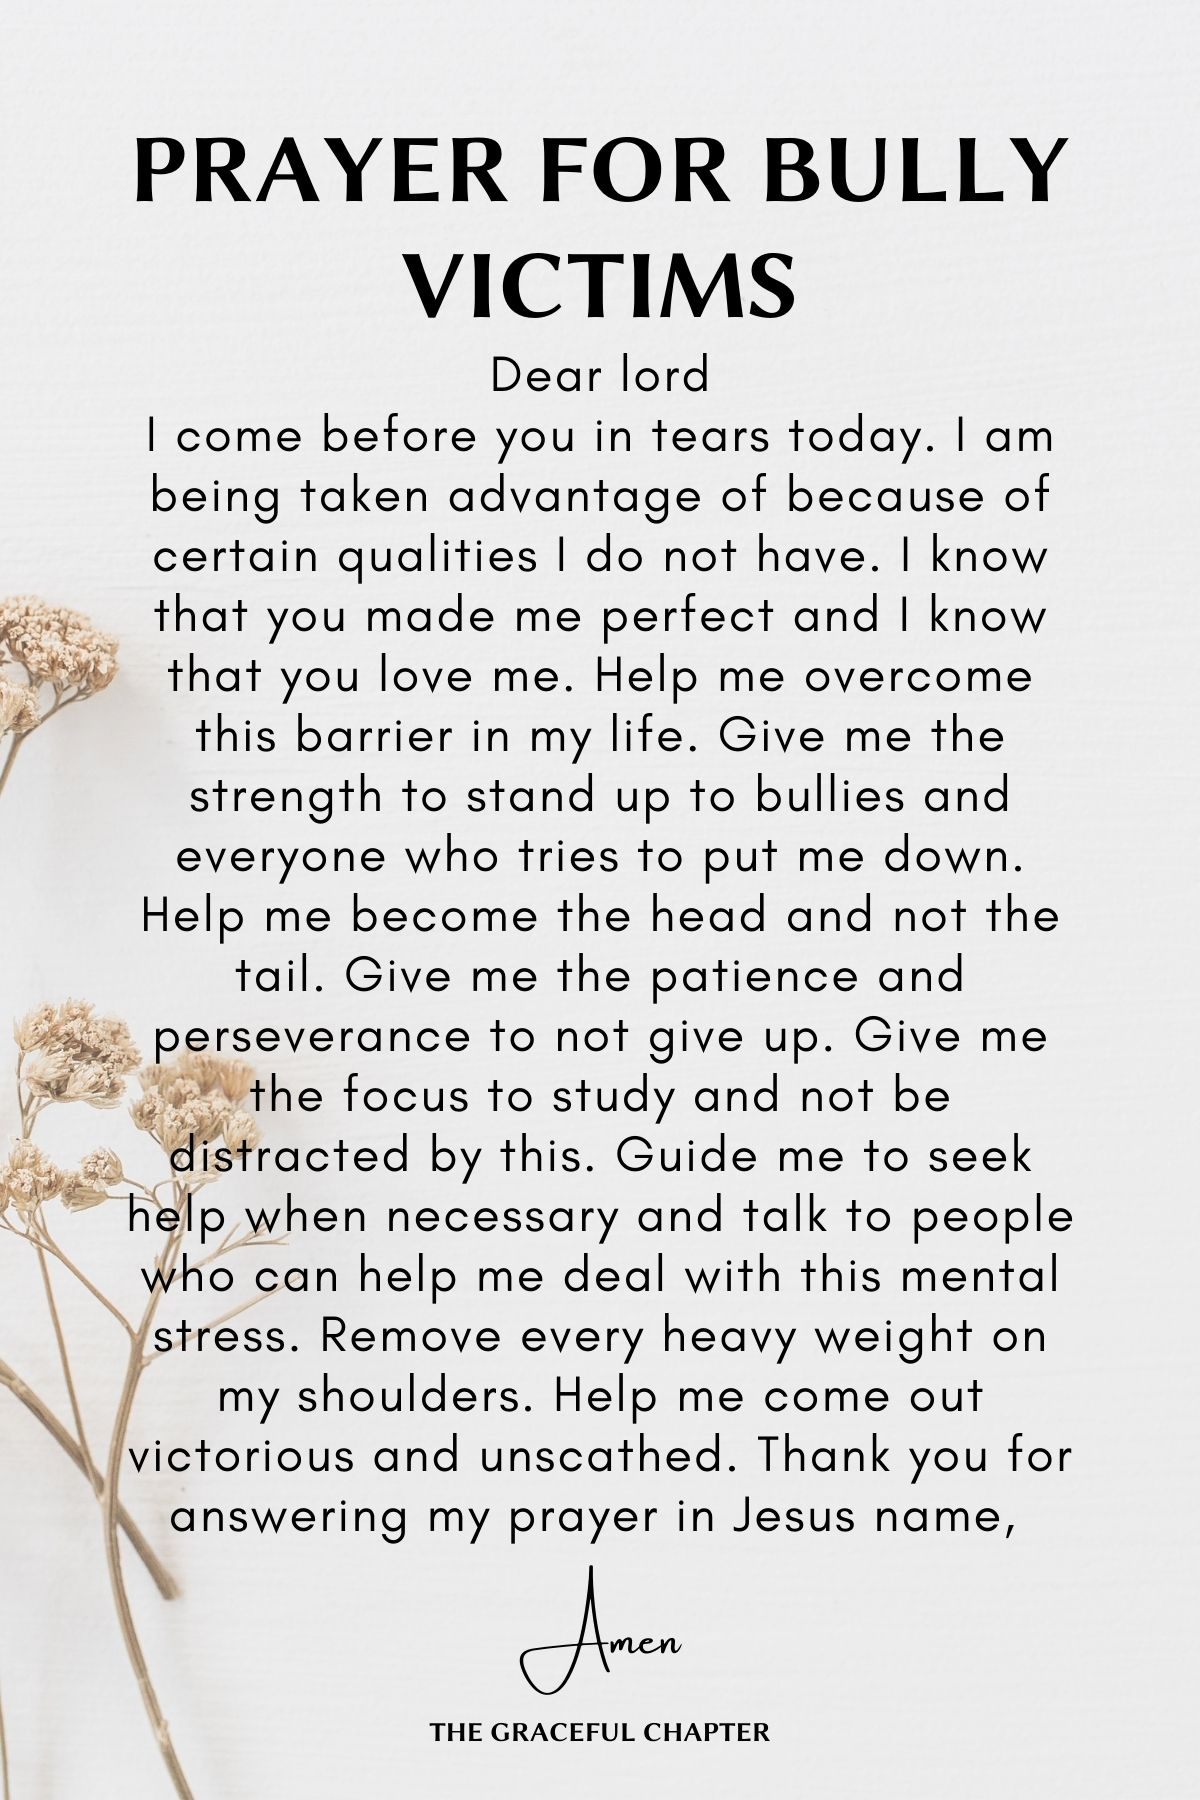 Prayer for bully victims